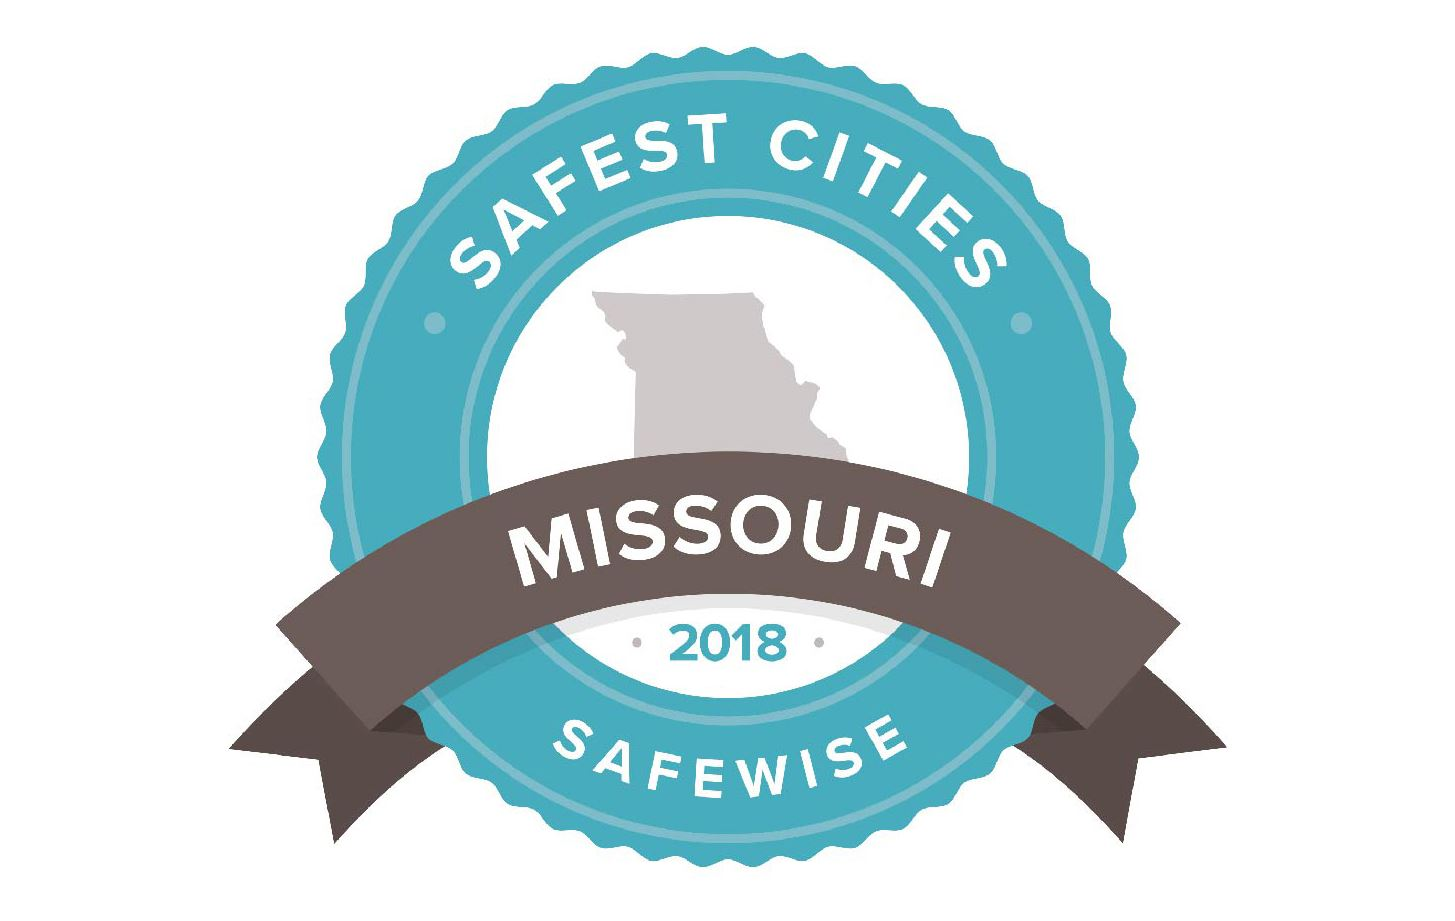 News Section Template - 2018 Safest City 2